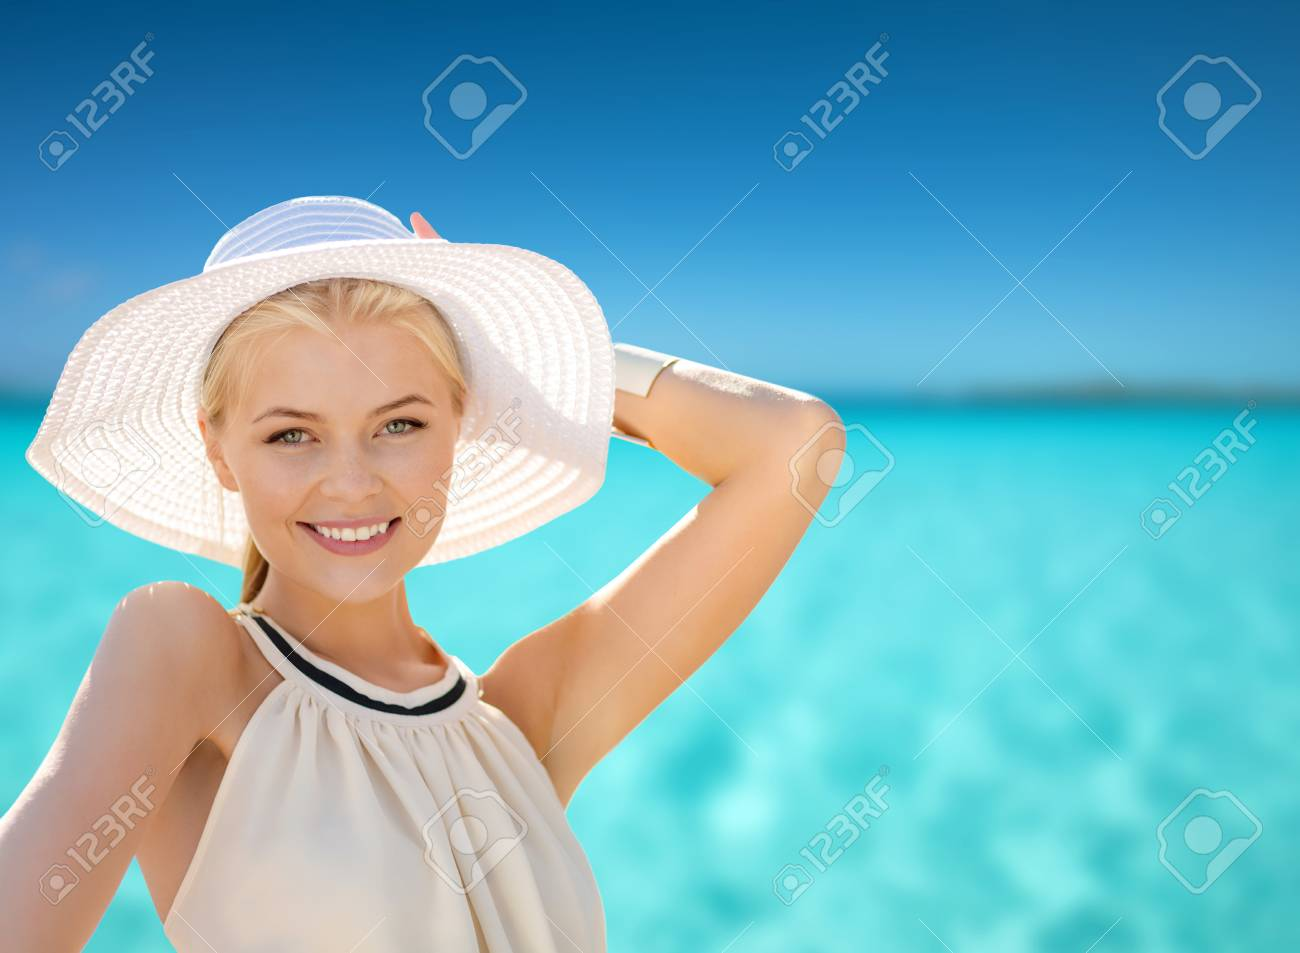 Fashion Happiness And Lifestyle Concept Beautiful Woman In